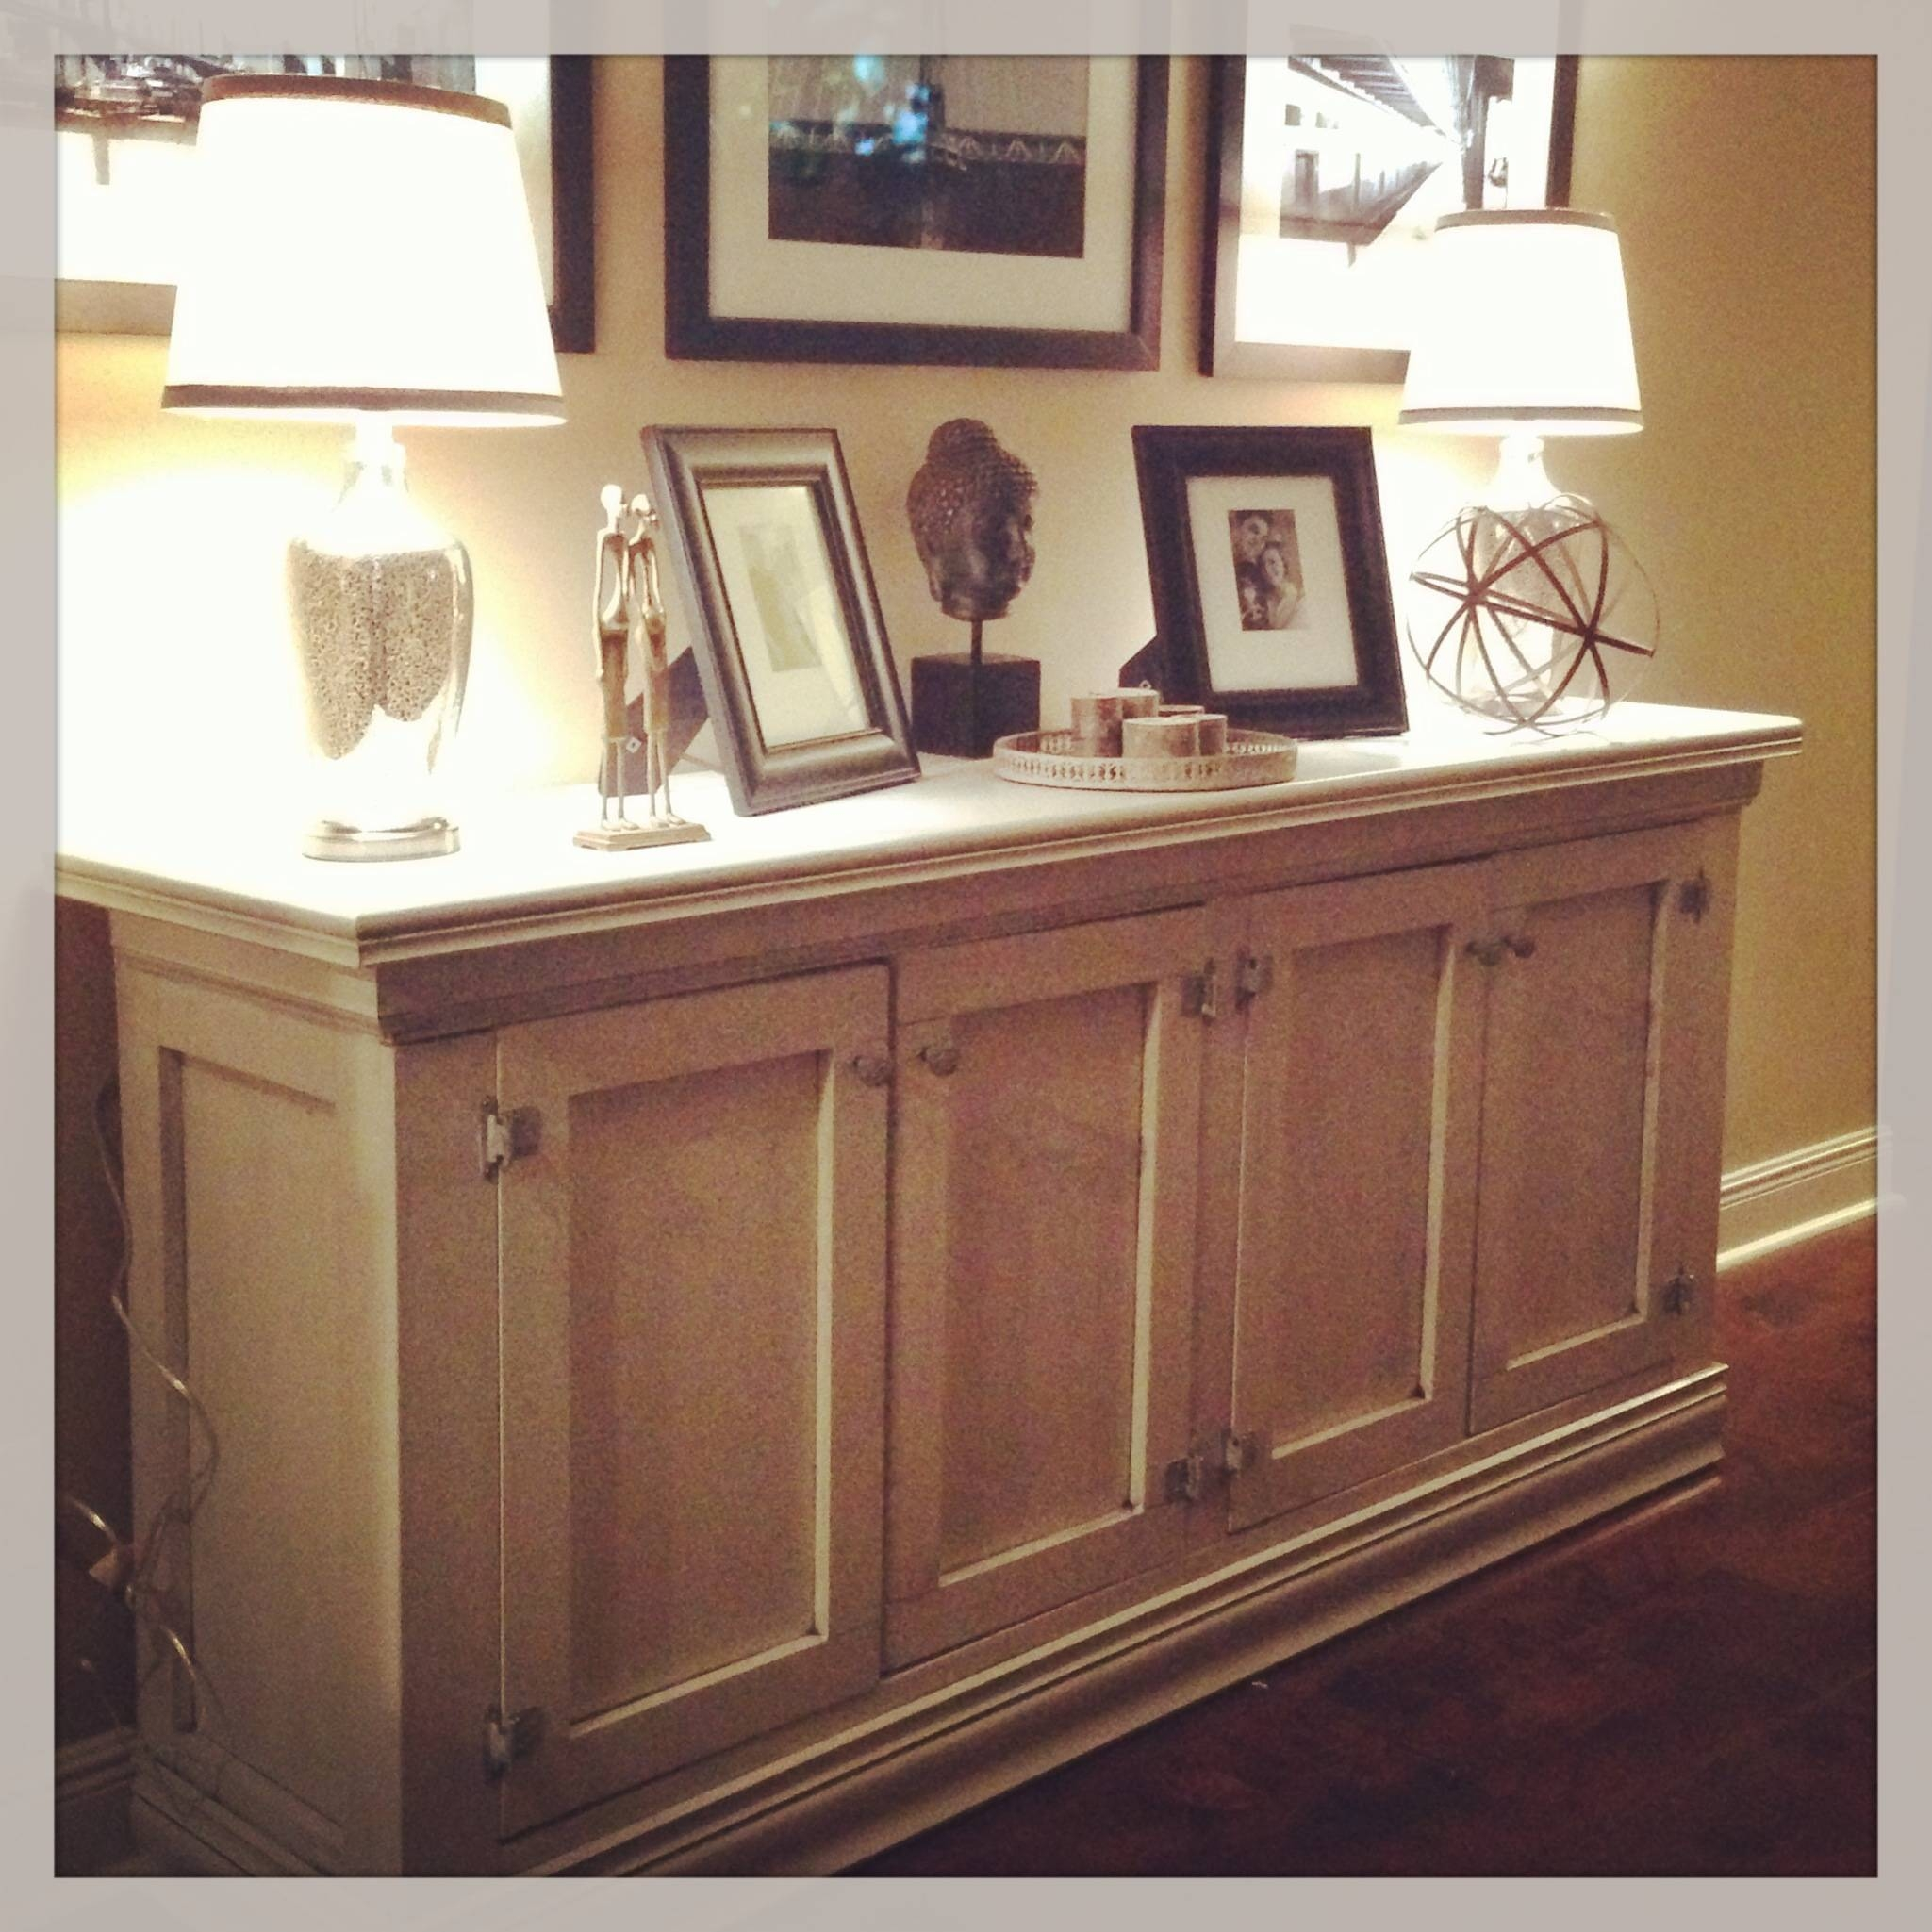 Breathtaking Dining Room Buffets Sideboards Ideas - Best Image in Buffets And Sideboards (Image 2 of 15)